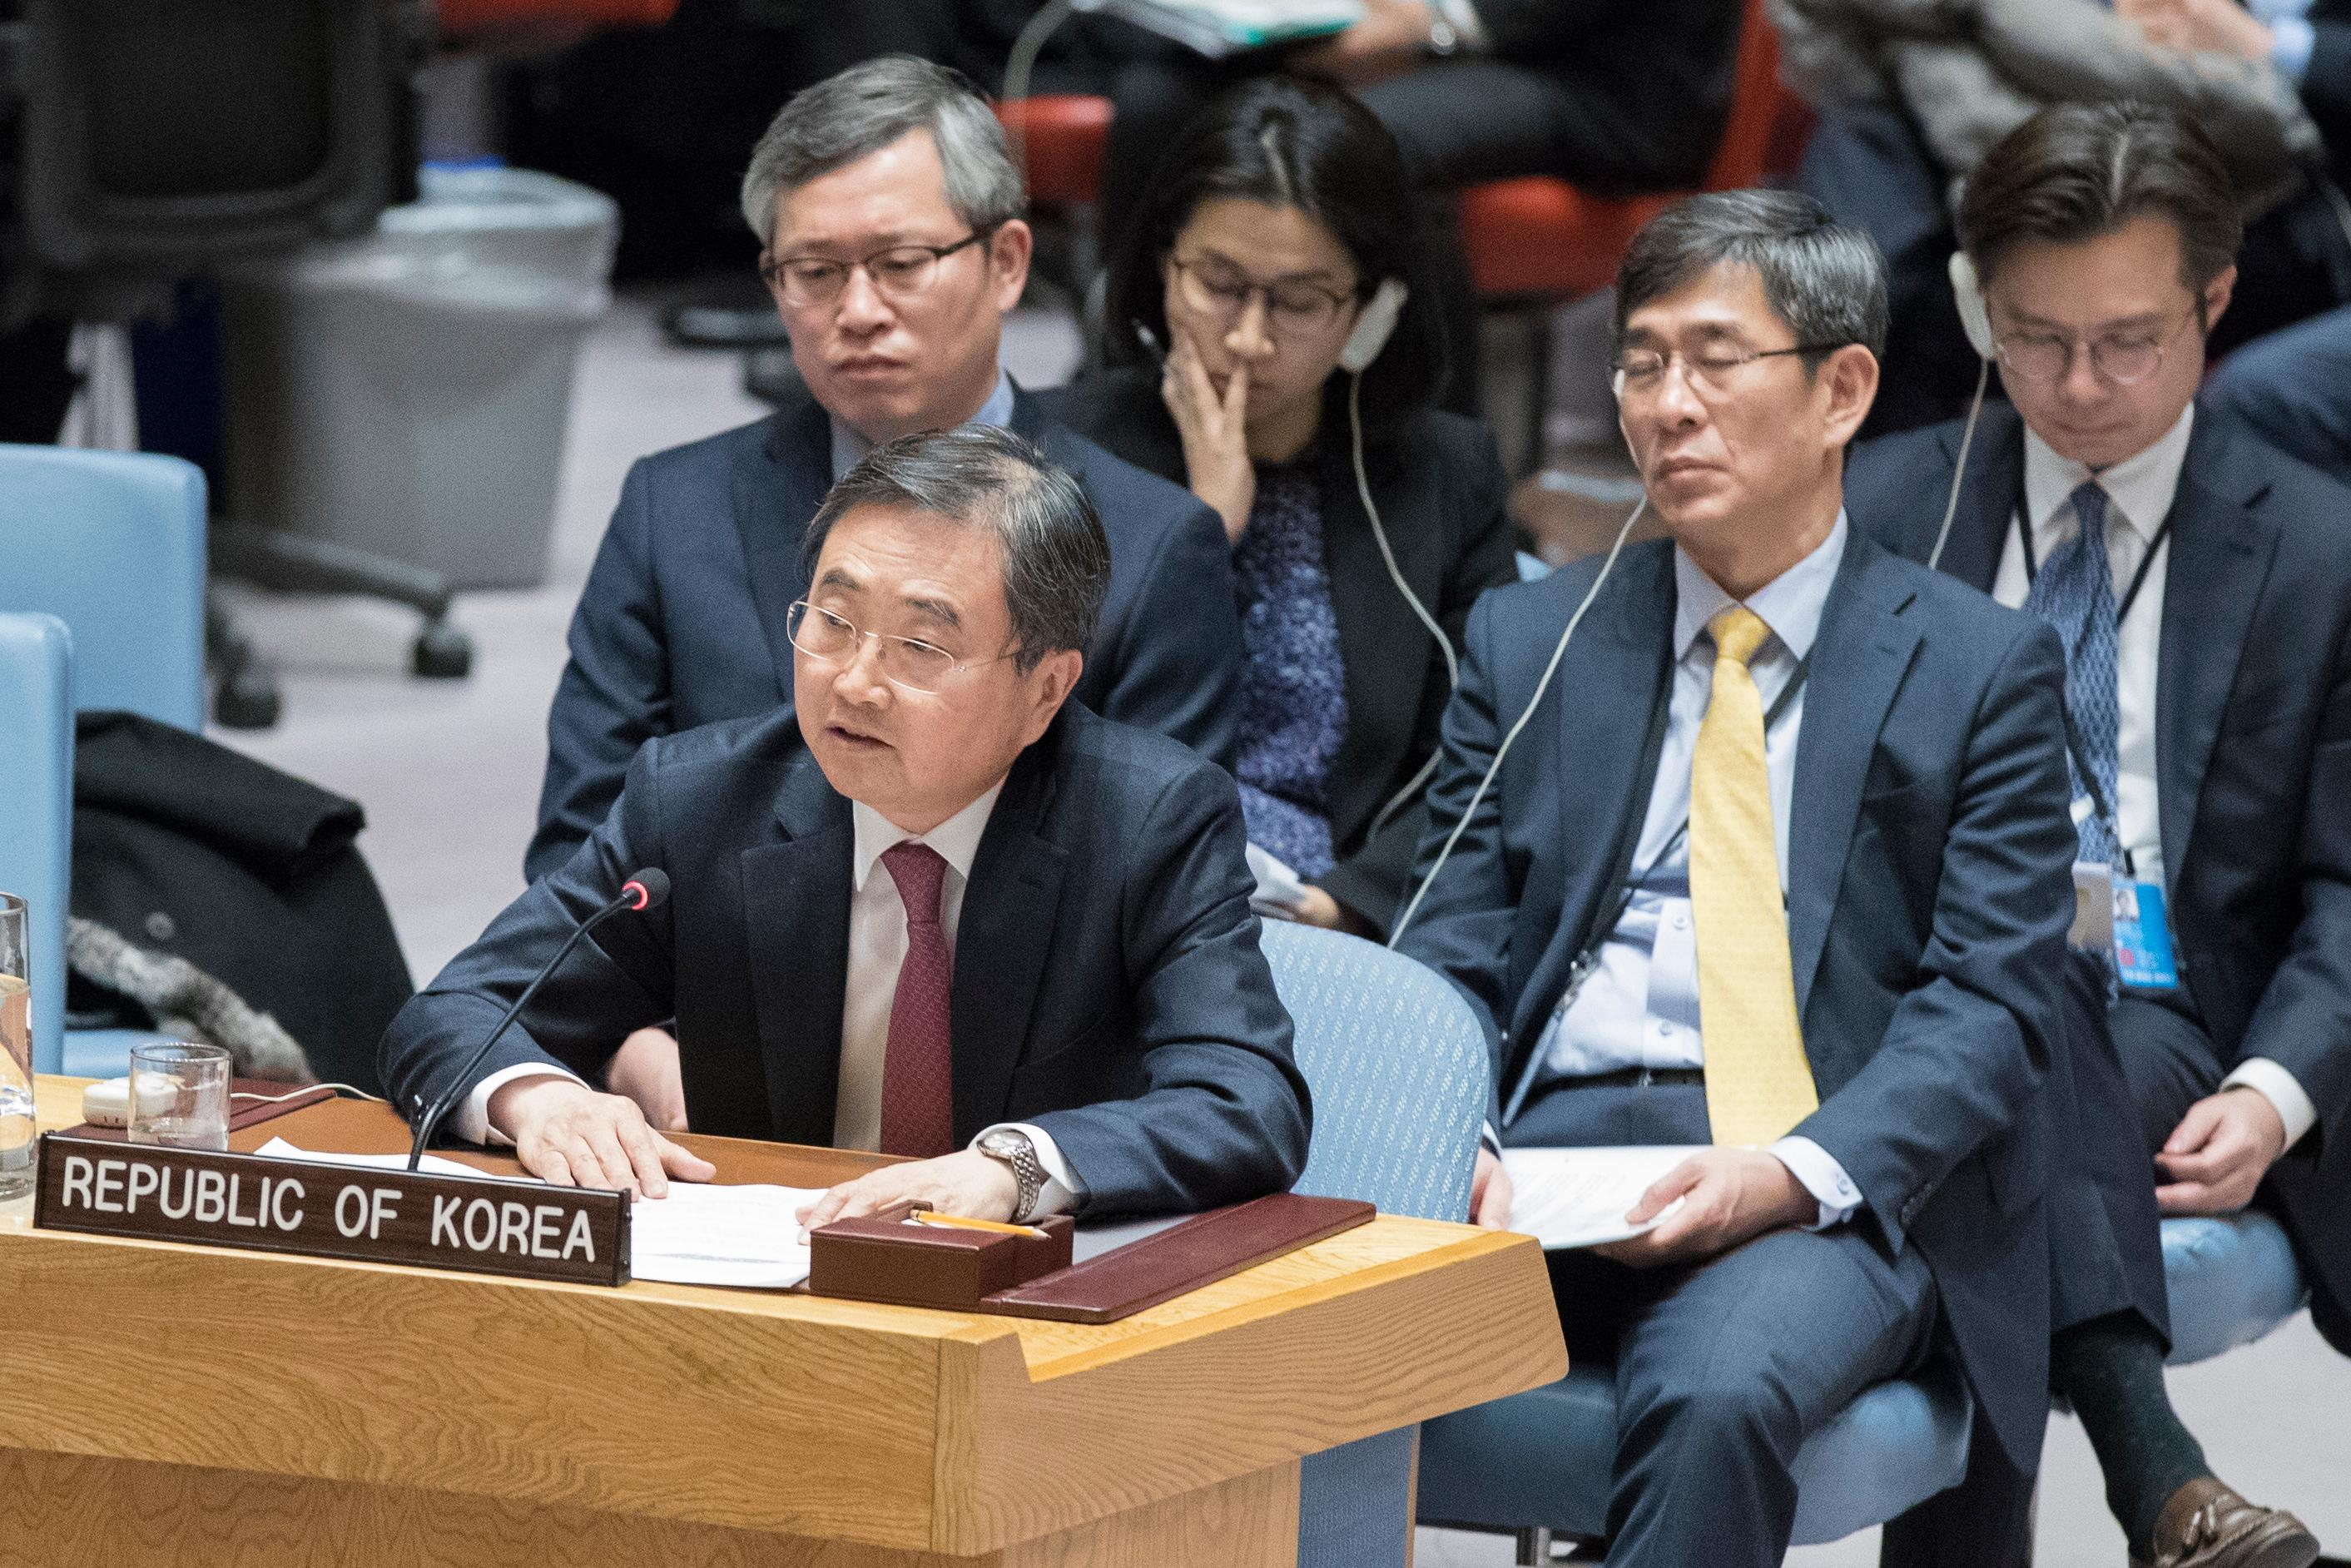 South Korean Vice Minister of Foreign Affairs Cho Hyun speaks during a high level Security Council meeting on the situation in North Korea, Friday, Dec. 15, 2017 at United Nations headquarters. (AP Photo/Mary Altaffer)